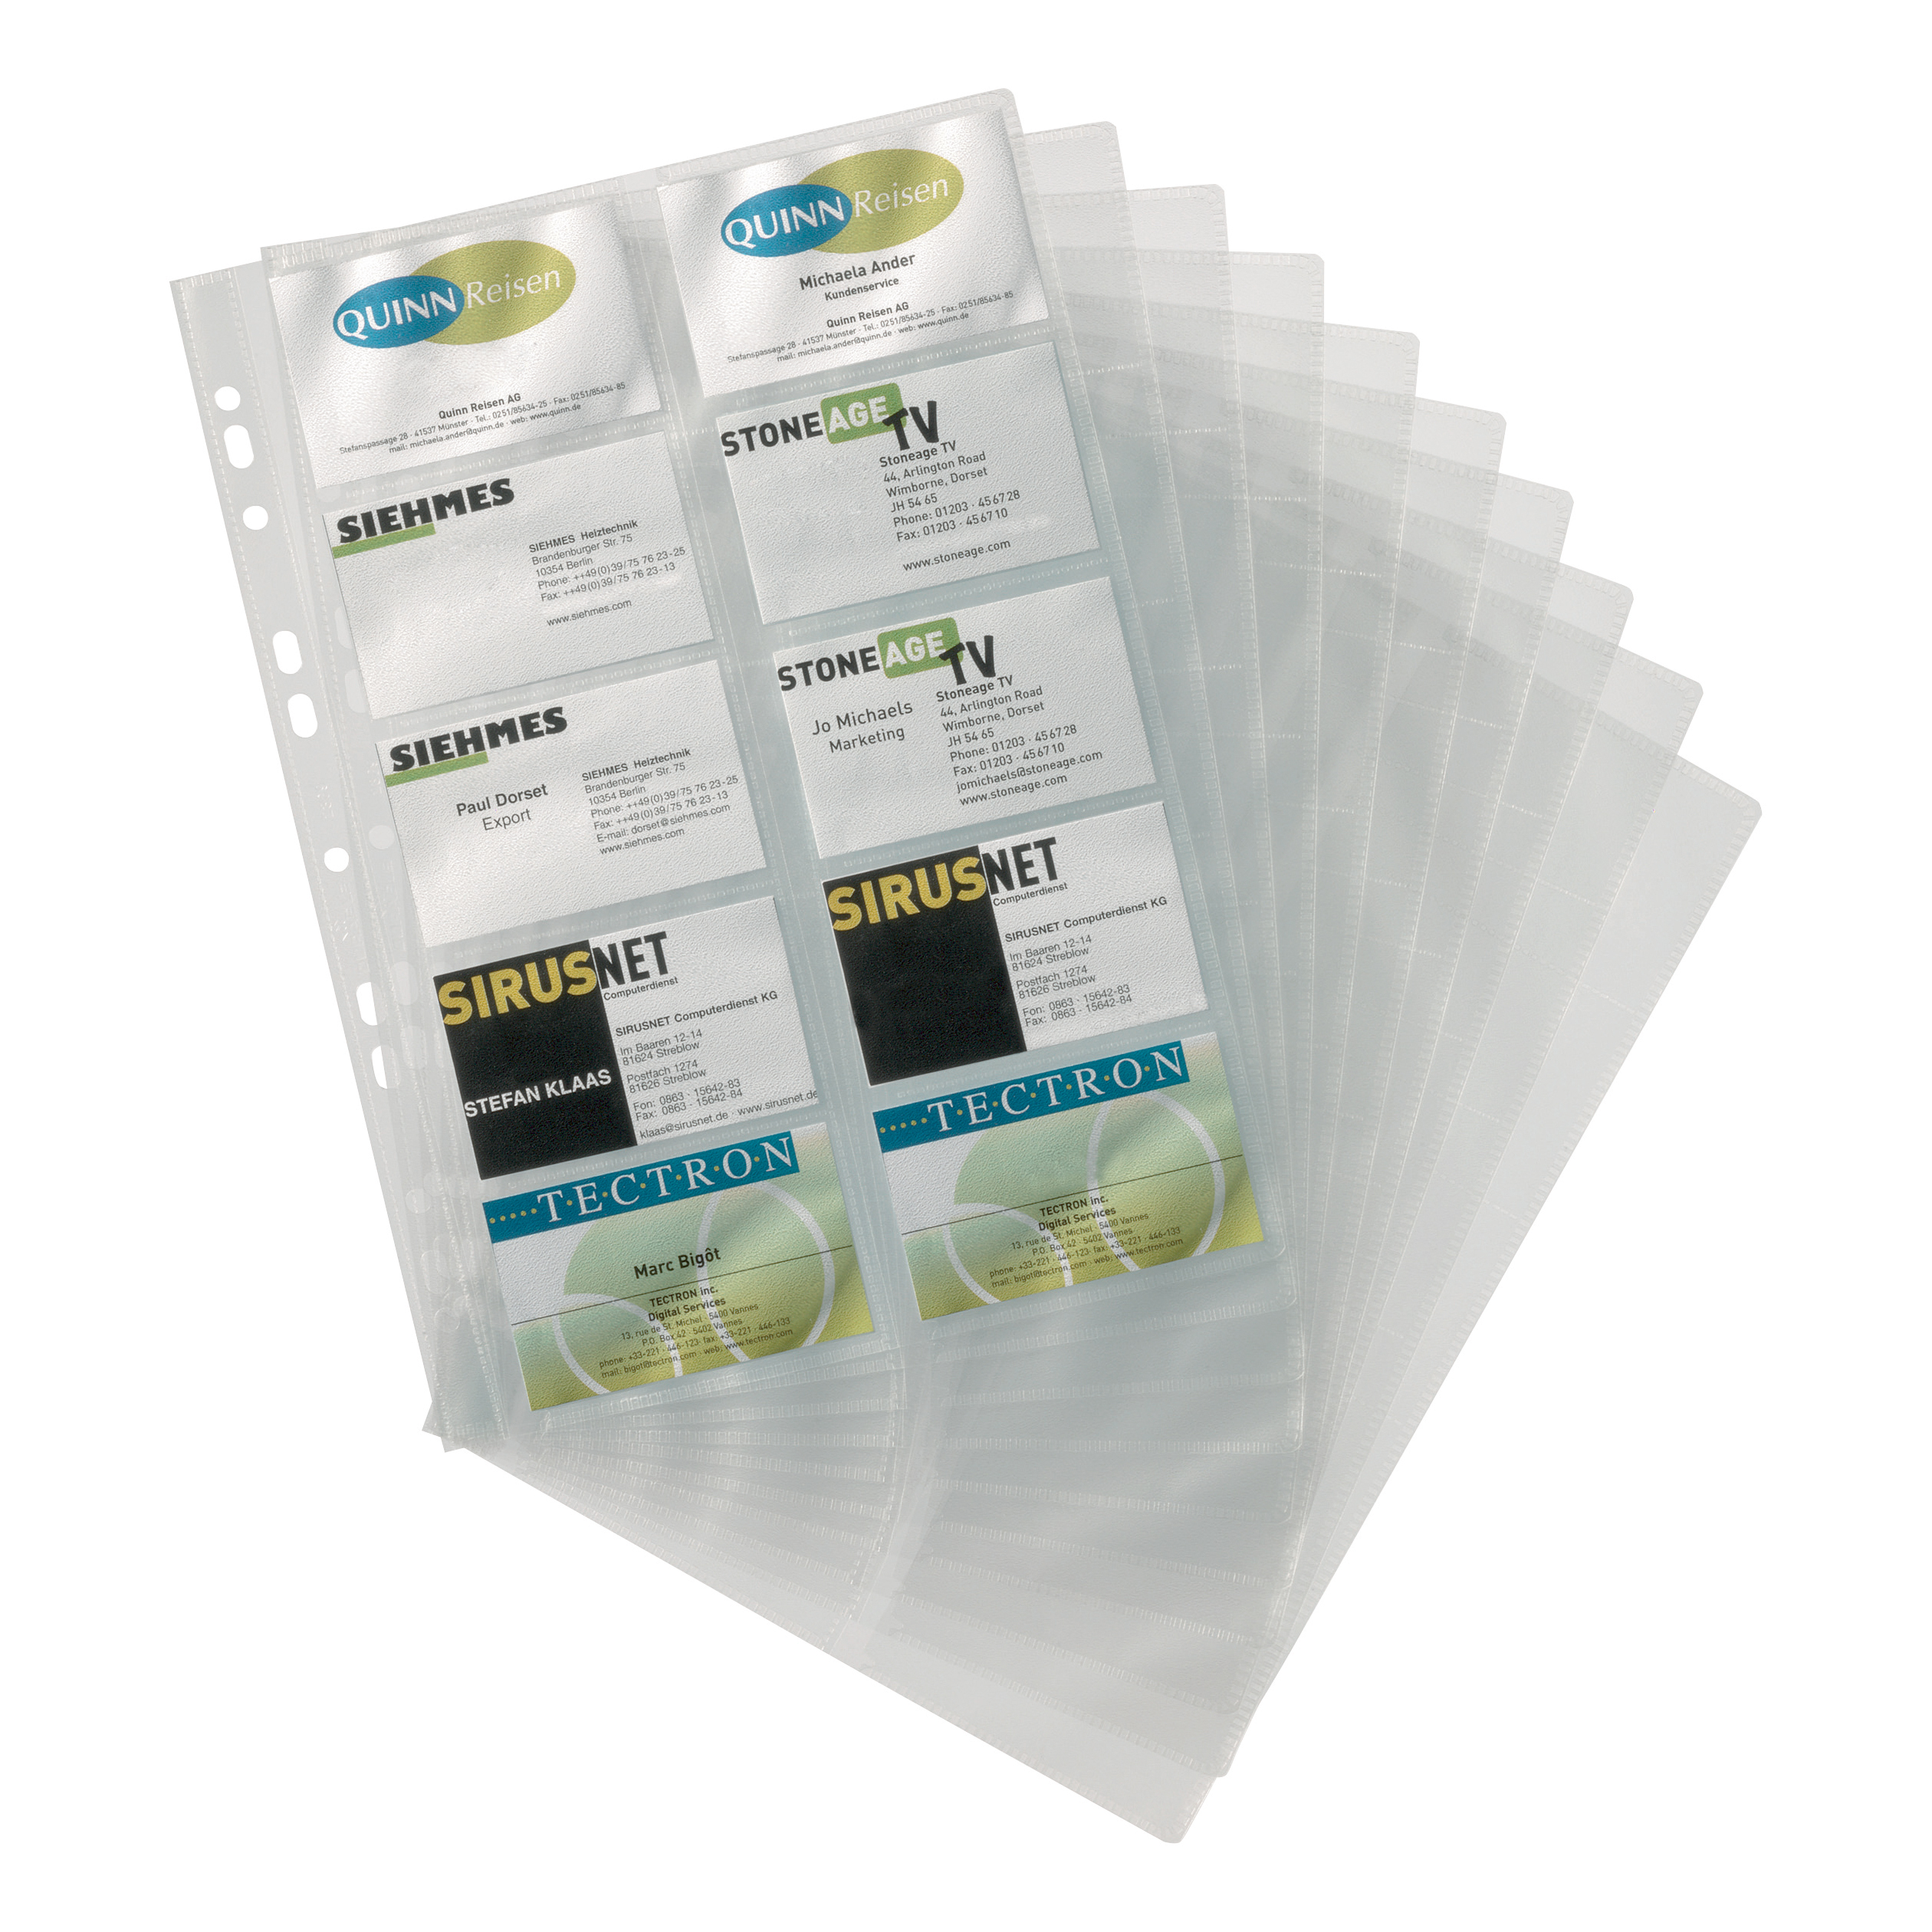 Refills Durable Visifix Refill Set for A4 Business Card Album Capacity 200 57x90mm Cards Ref 2388/36